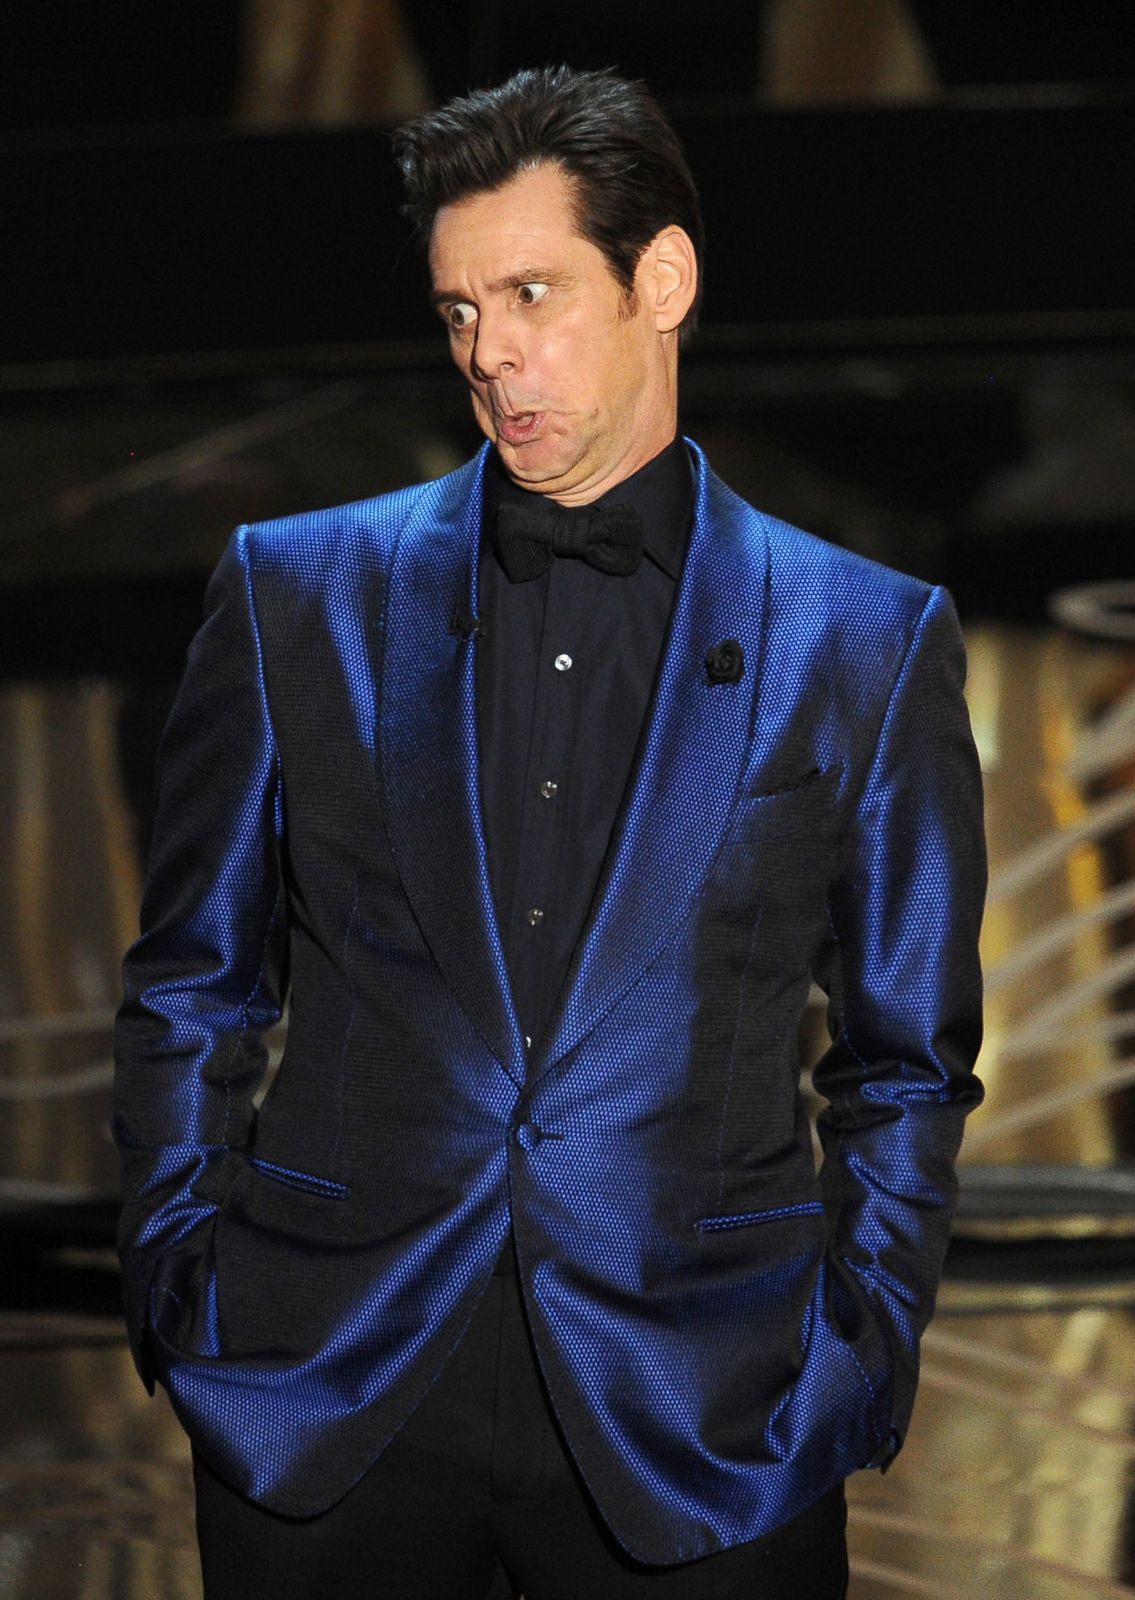 Jim Carrey Makes a Funny Face Picture | The Best Moments from the ...